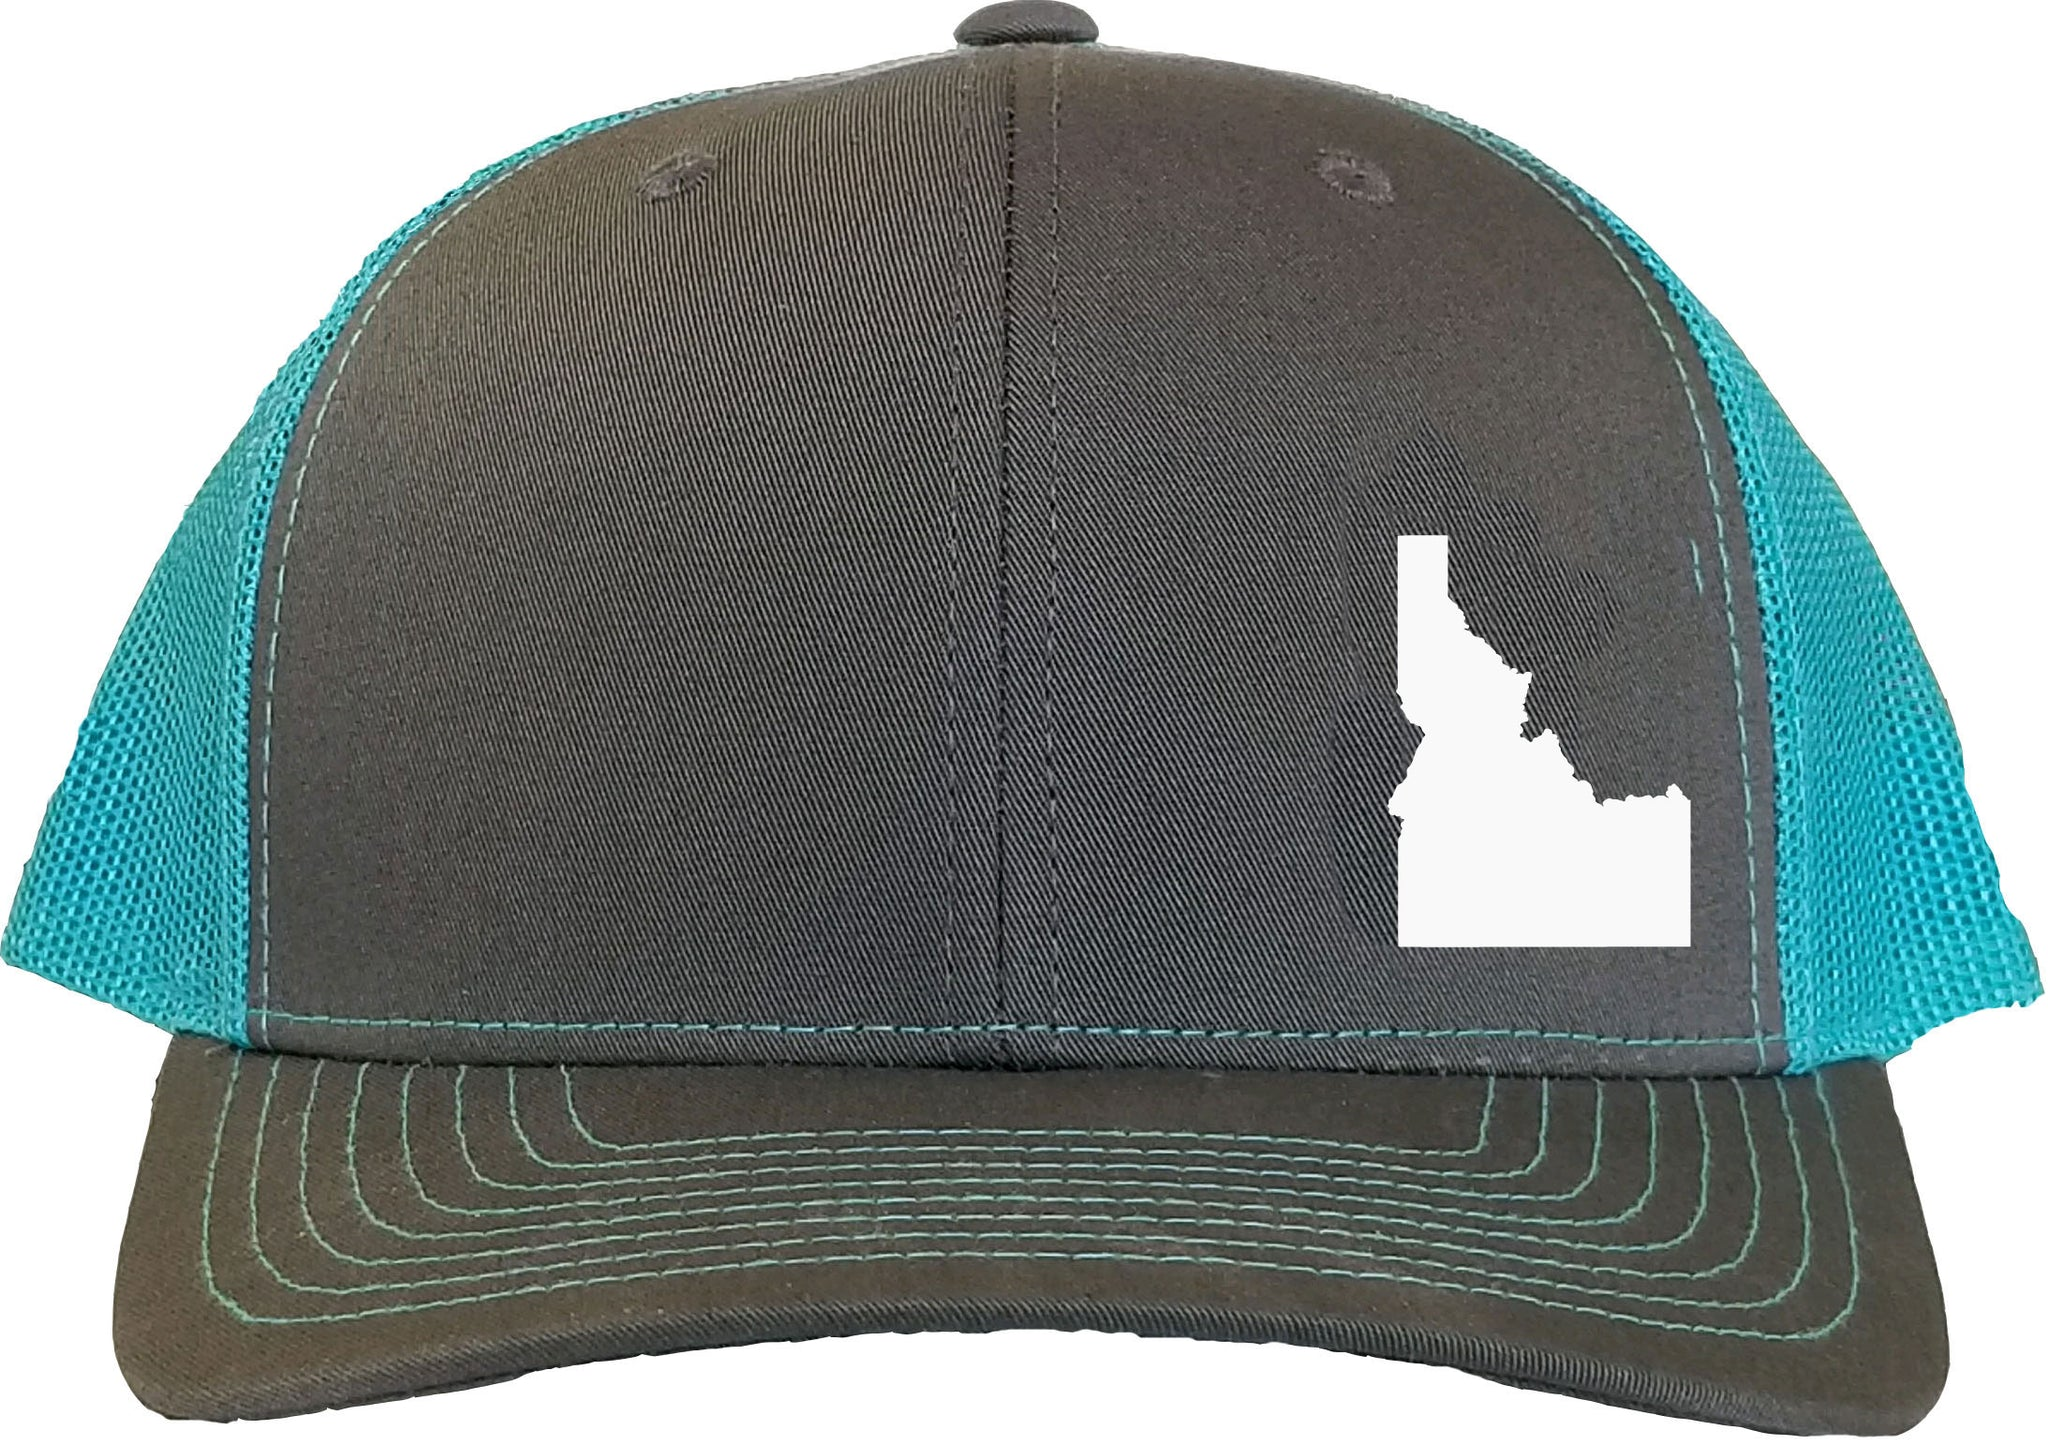 Idaho Snapback Hat - Grey/Aqua